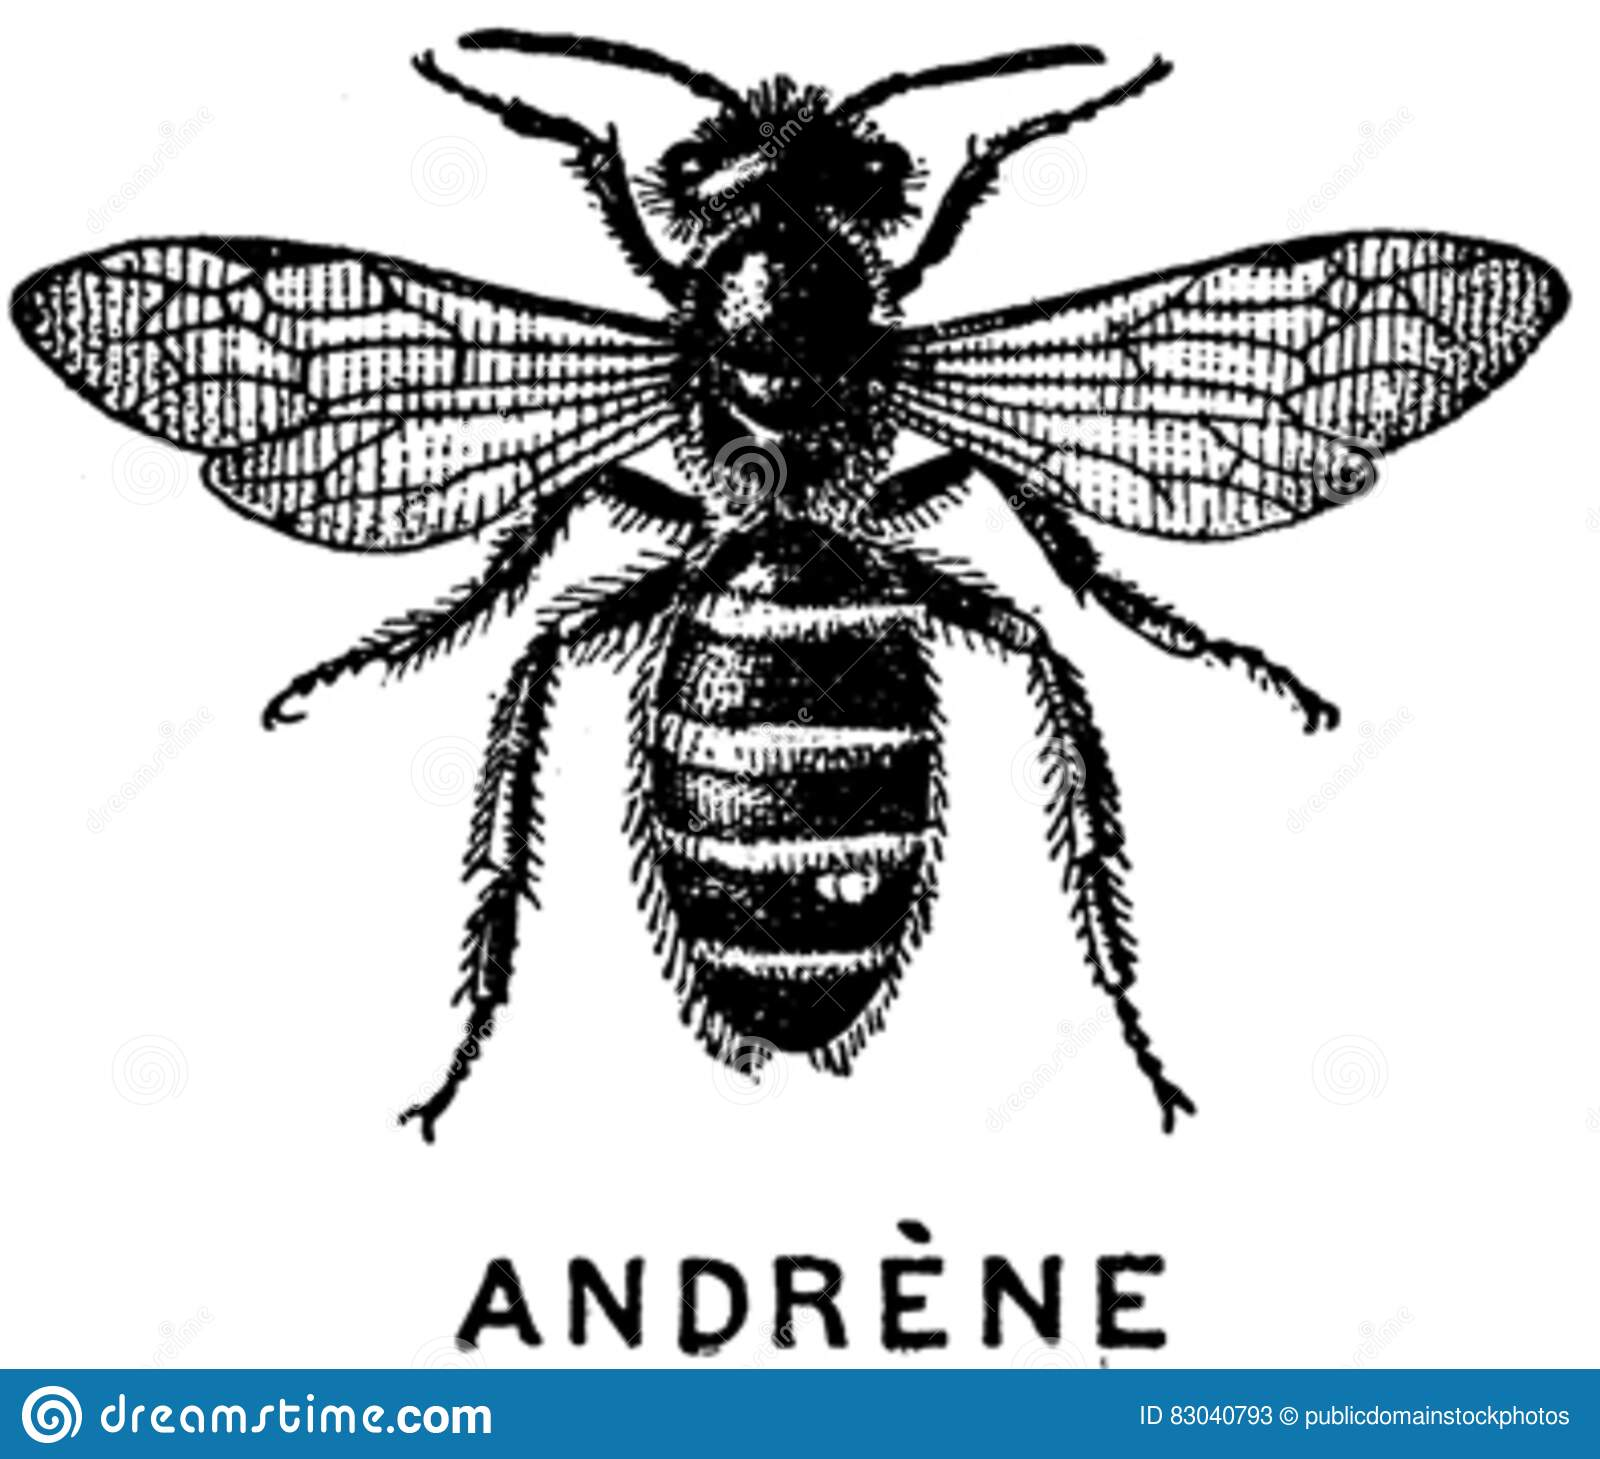 Download Andrene-OA stock image. Image of  - 83040793